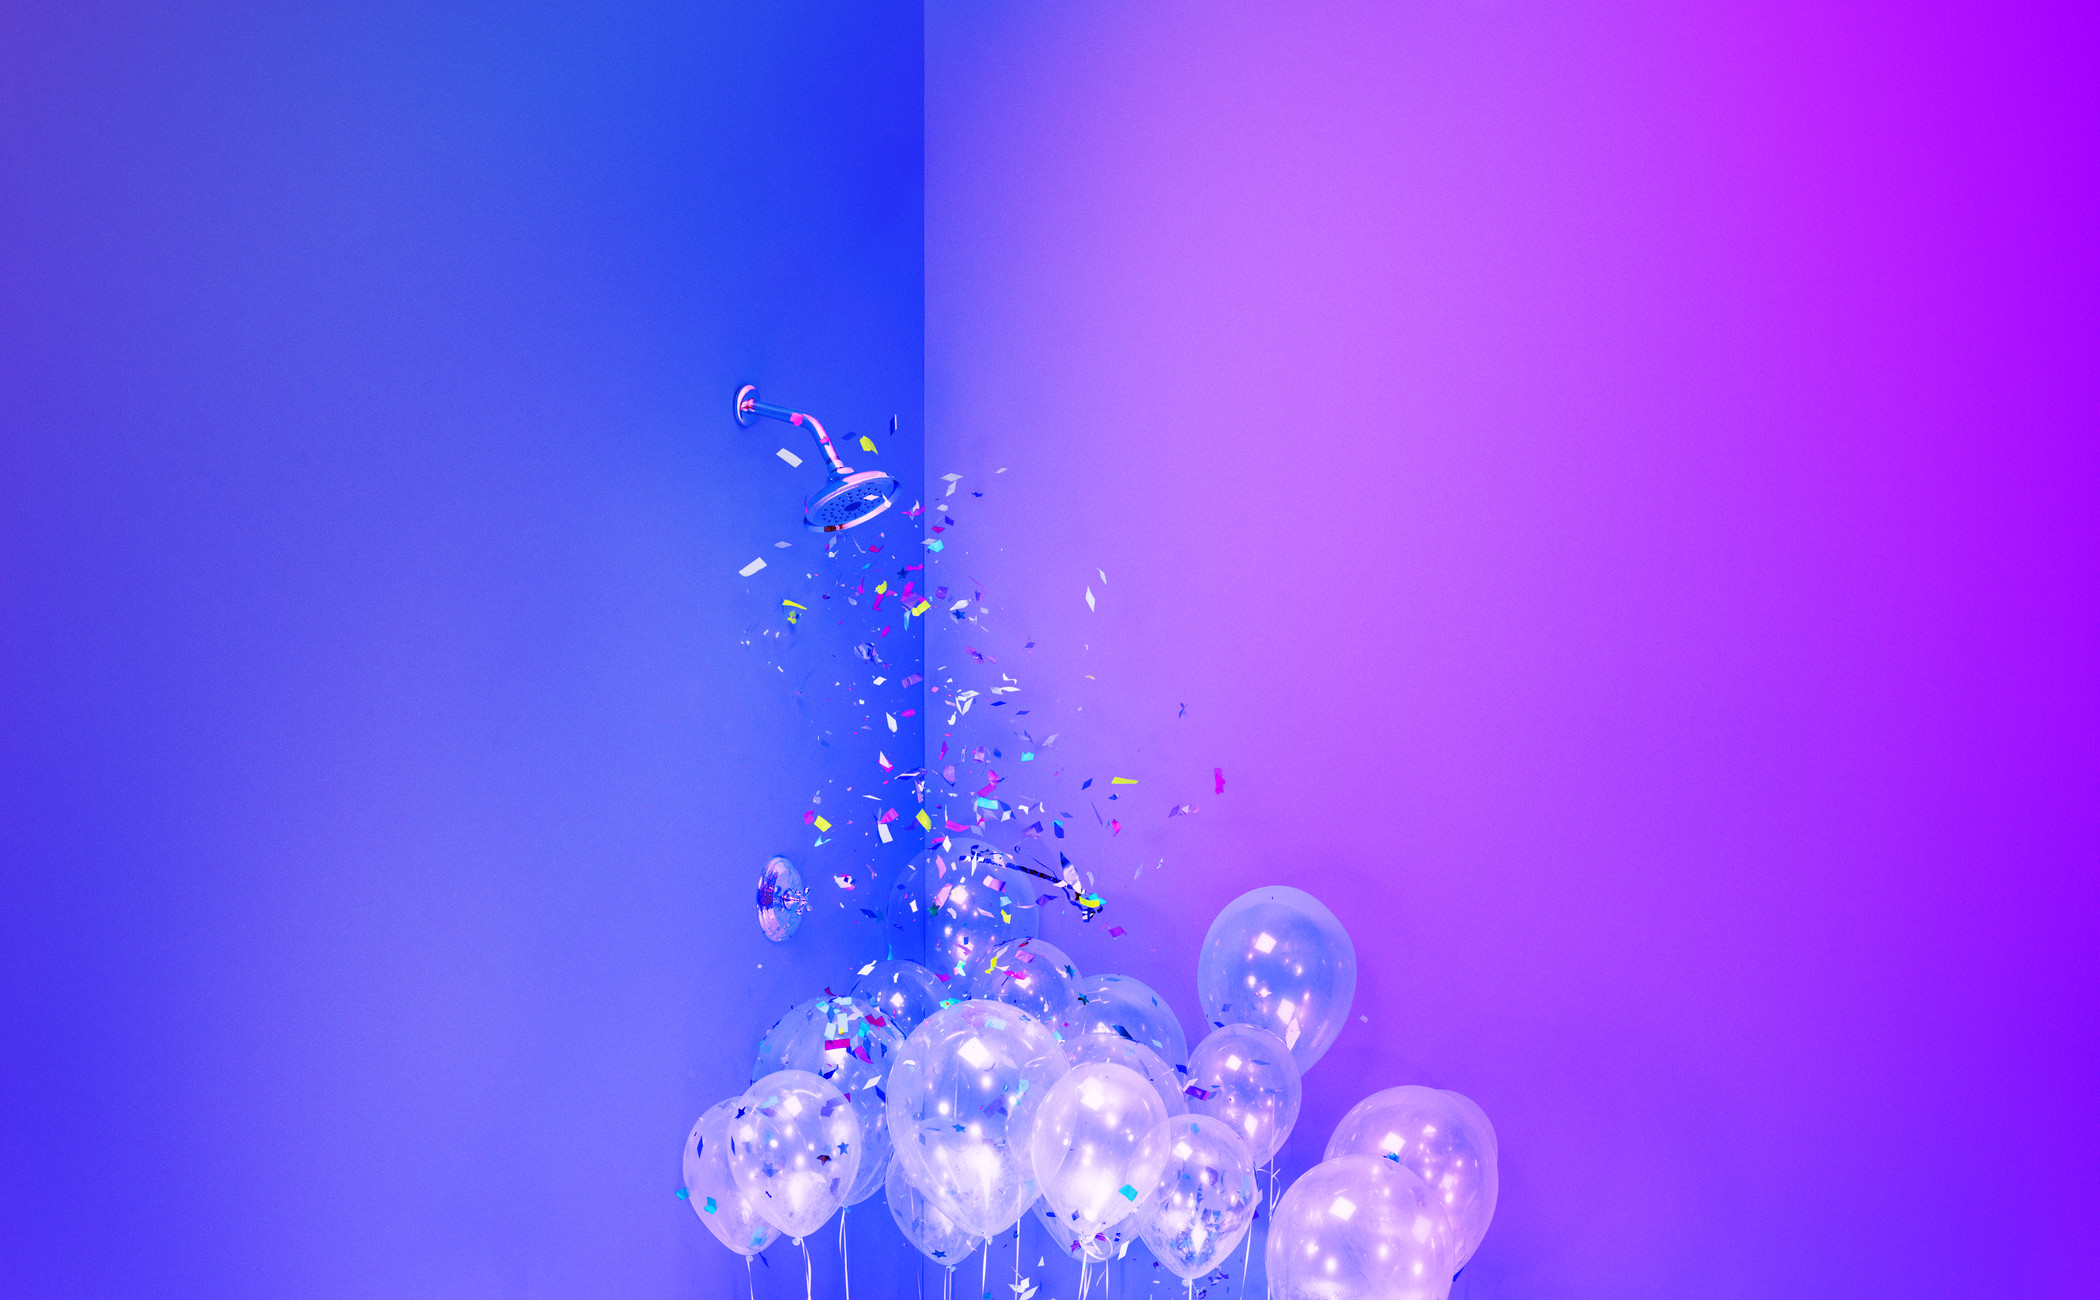 white balloons with confetti on a purple background